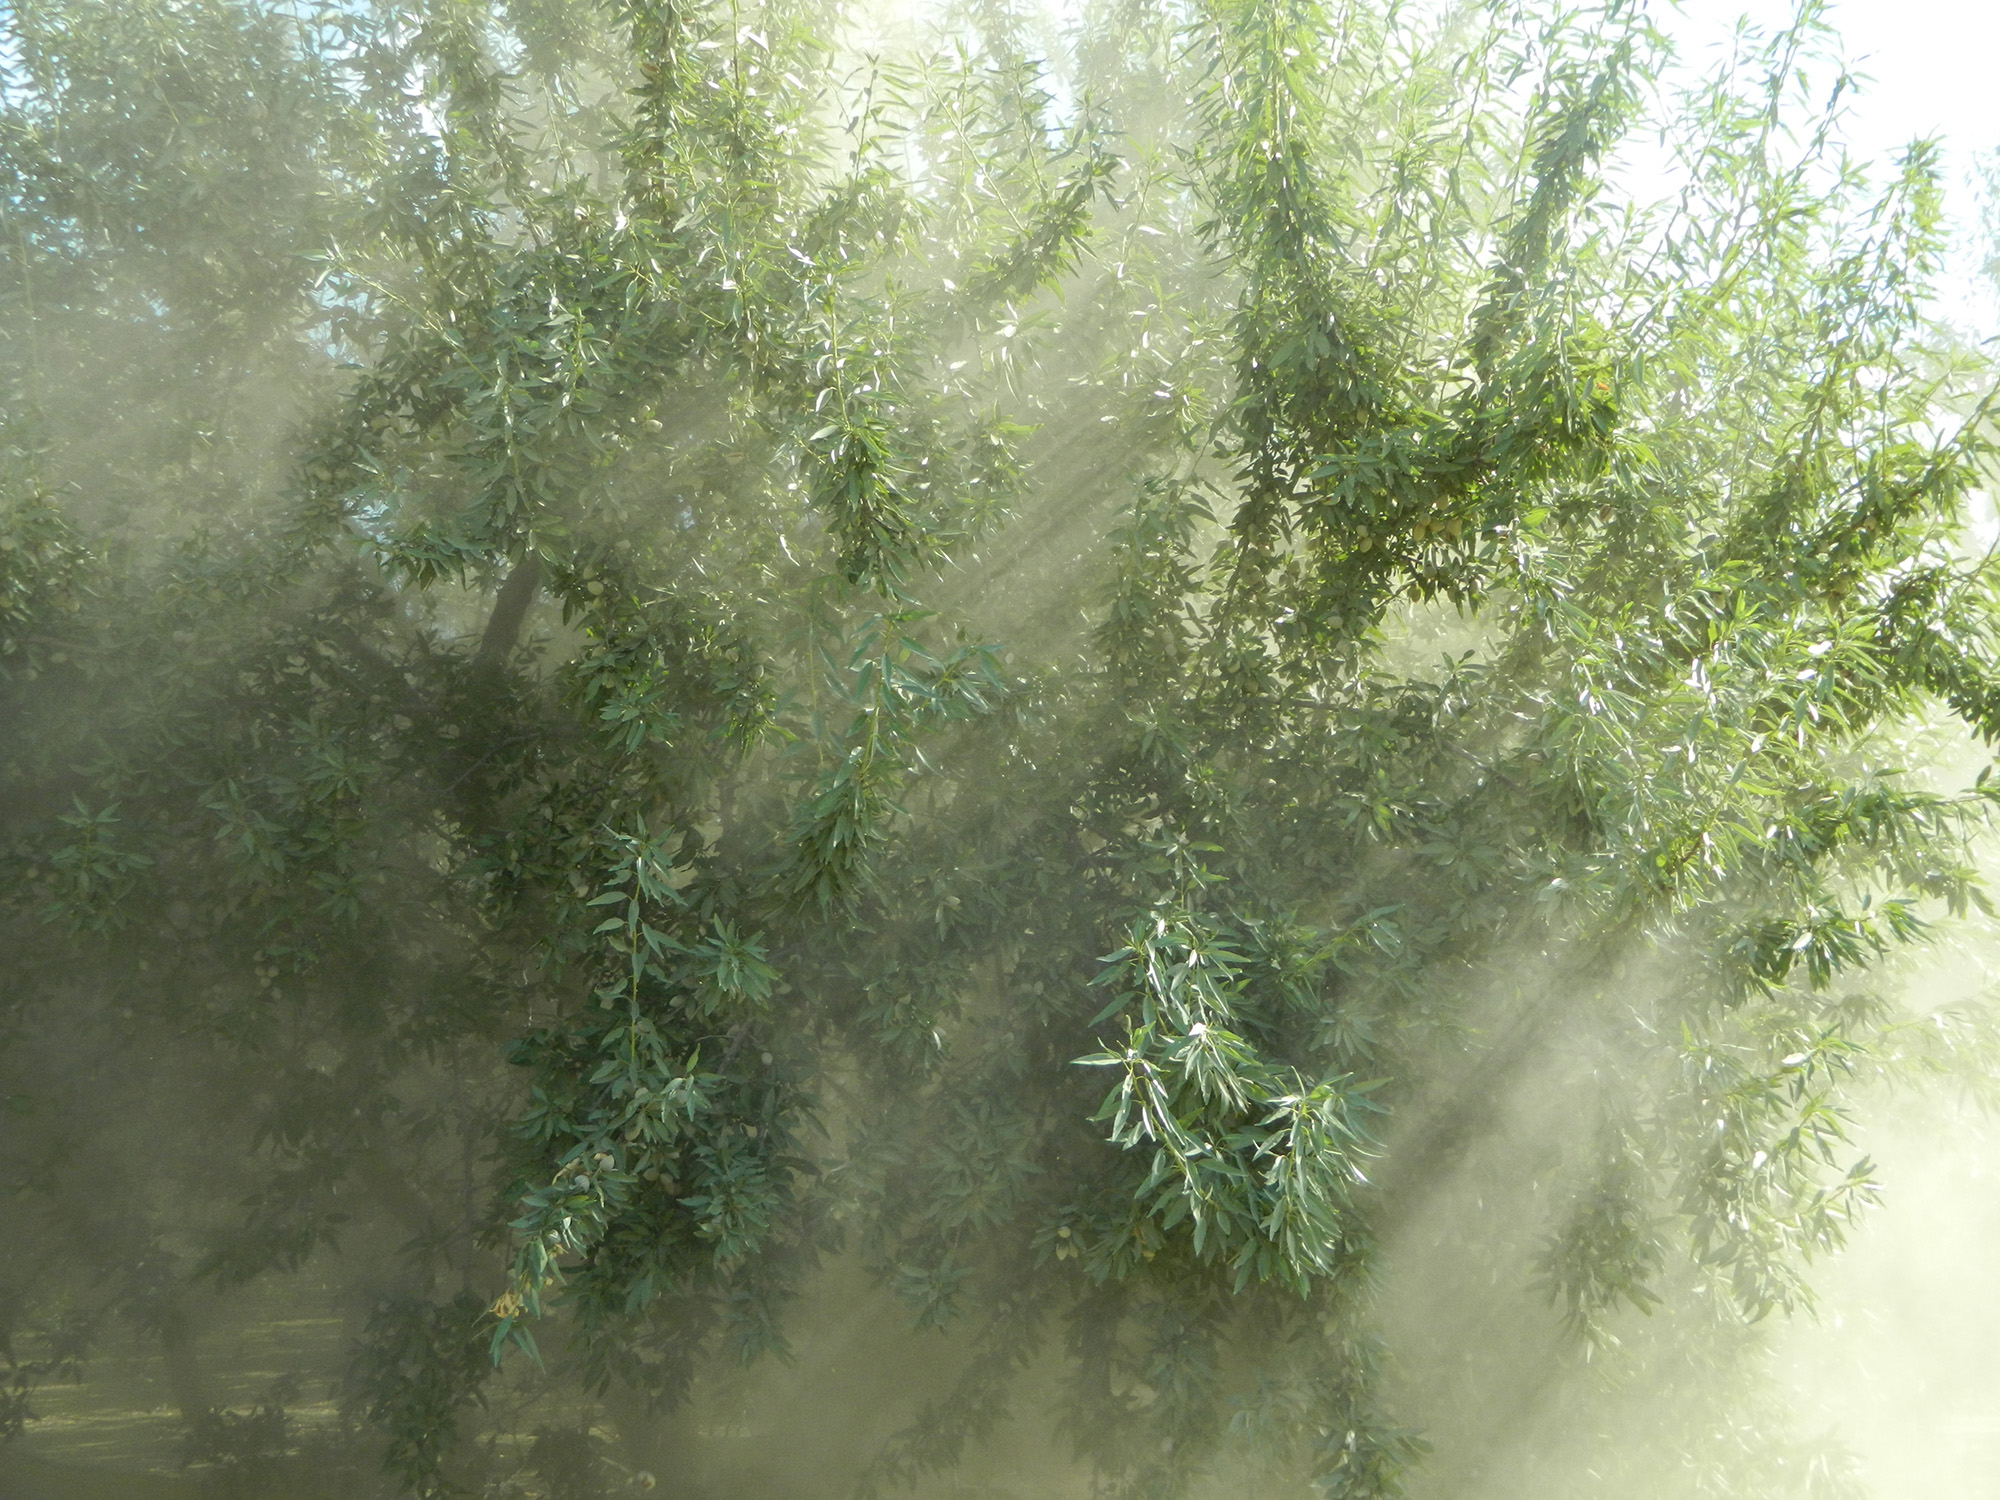 Harvesting almonds, shows dust and sunlight through tree banches